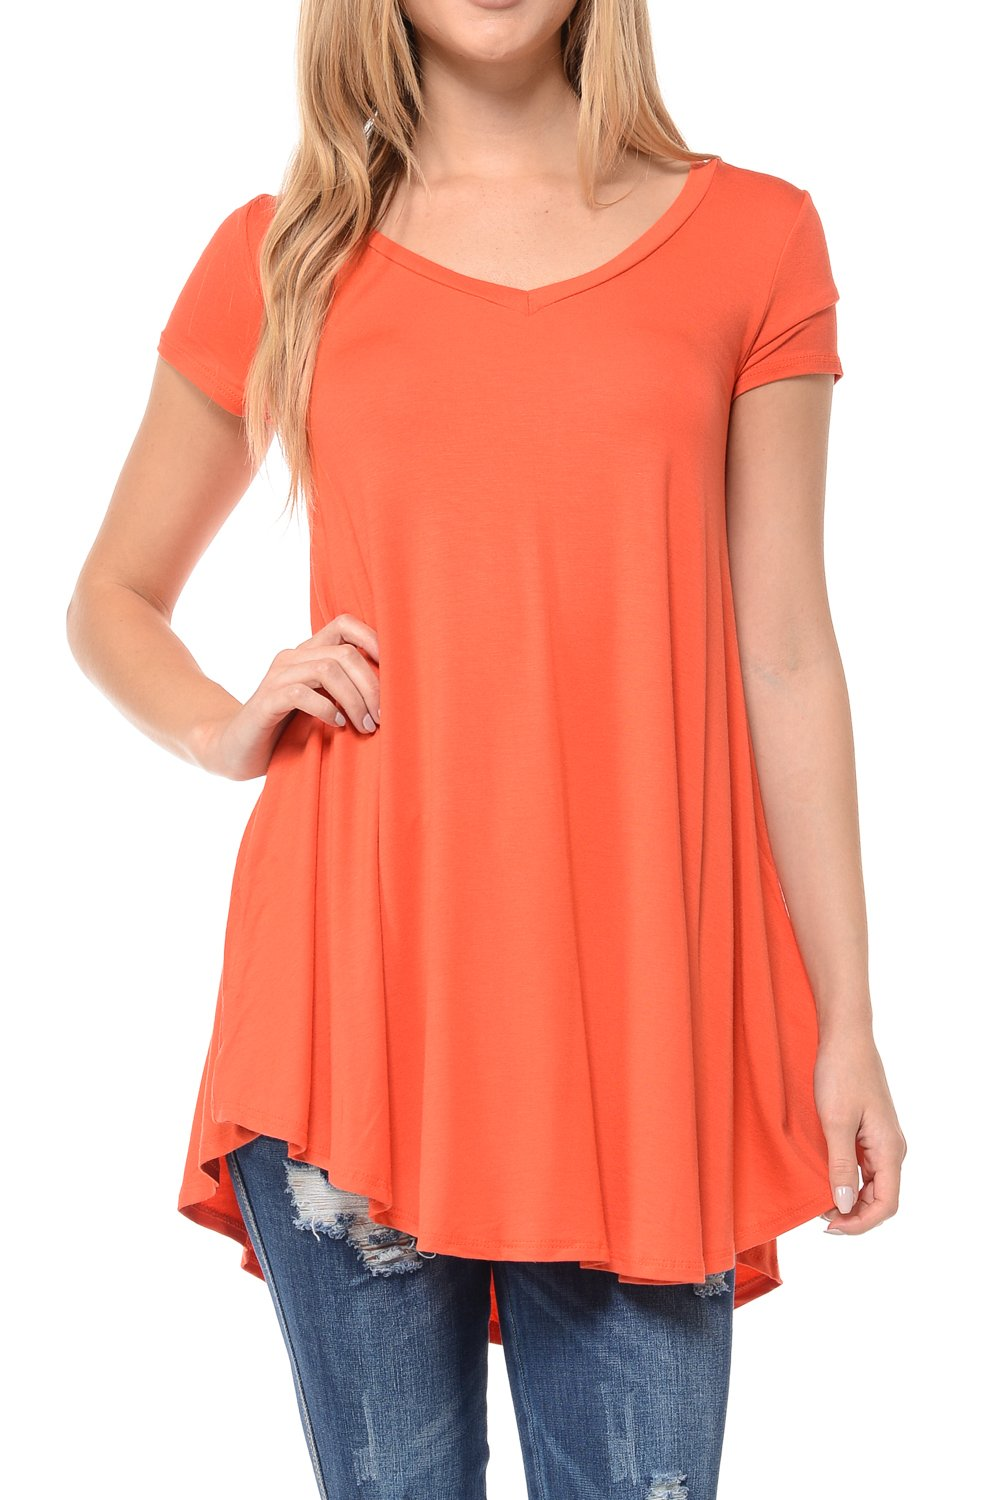 Shamaim Womens Short Sleeve Flattering Comfy Tunic Loose Fit Flowy Top Coral 3X-Large